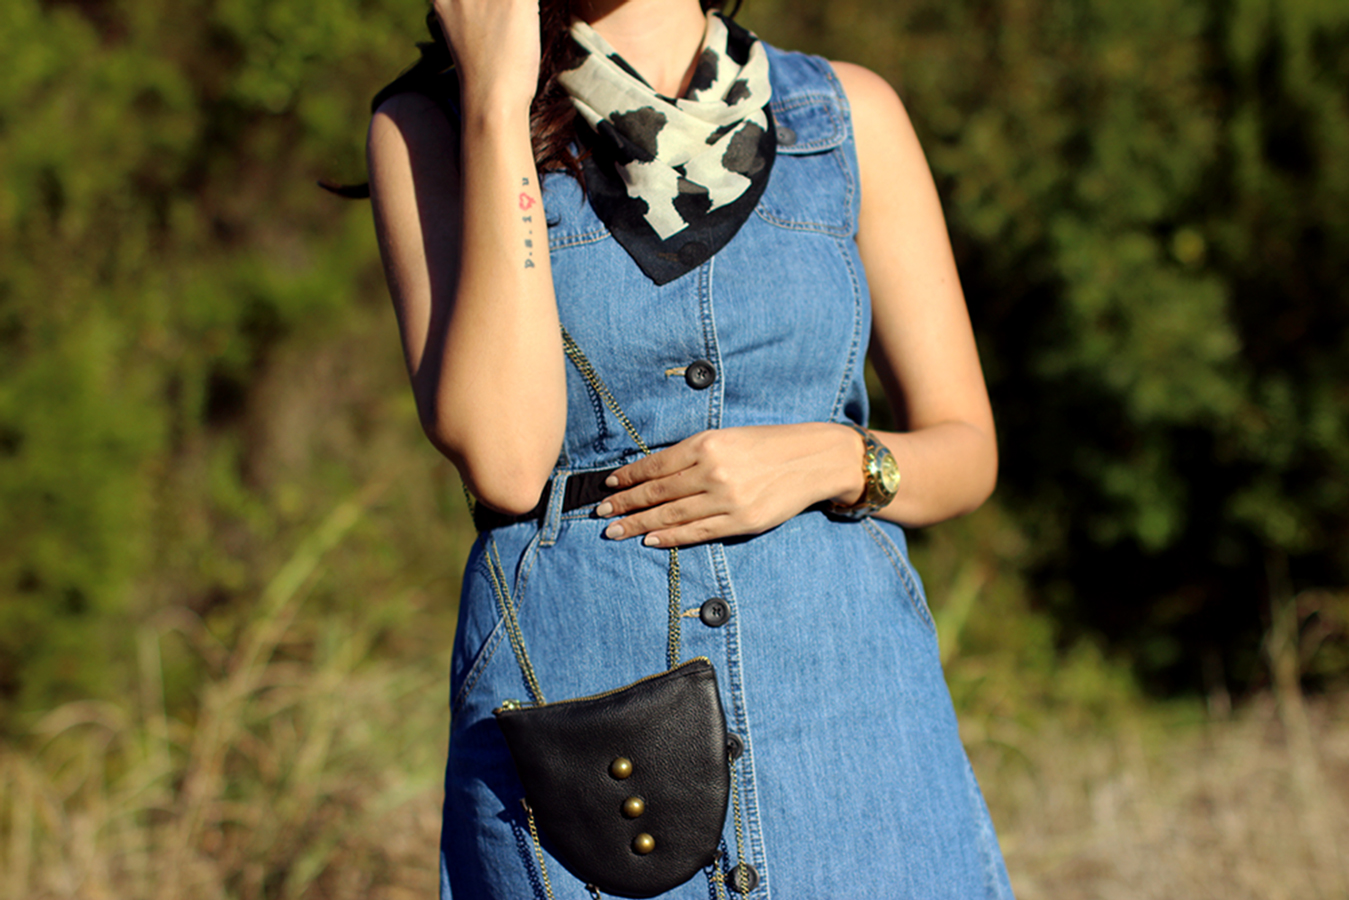 FIXIN-TO-THRILL-PINK-SILVER-FASHION-DENIM-DRESS-STRAPPY-HEELS-TREND-FALL-OCTOBER-ATX-AUSTIN-STYLE-BLOG-FW15-TRENDY-CHIC-GLAM-TEXAS-2